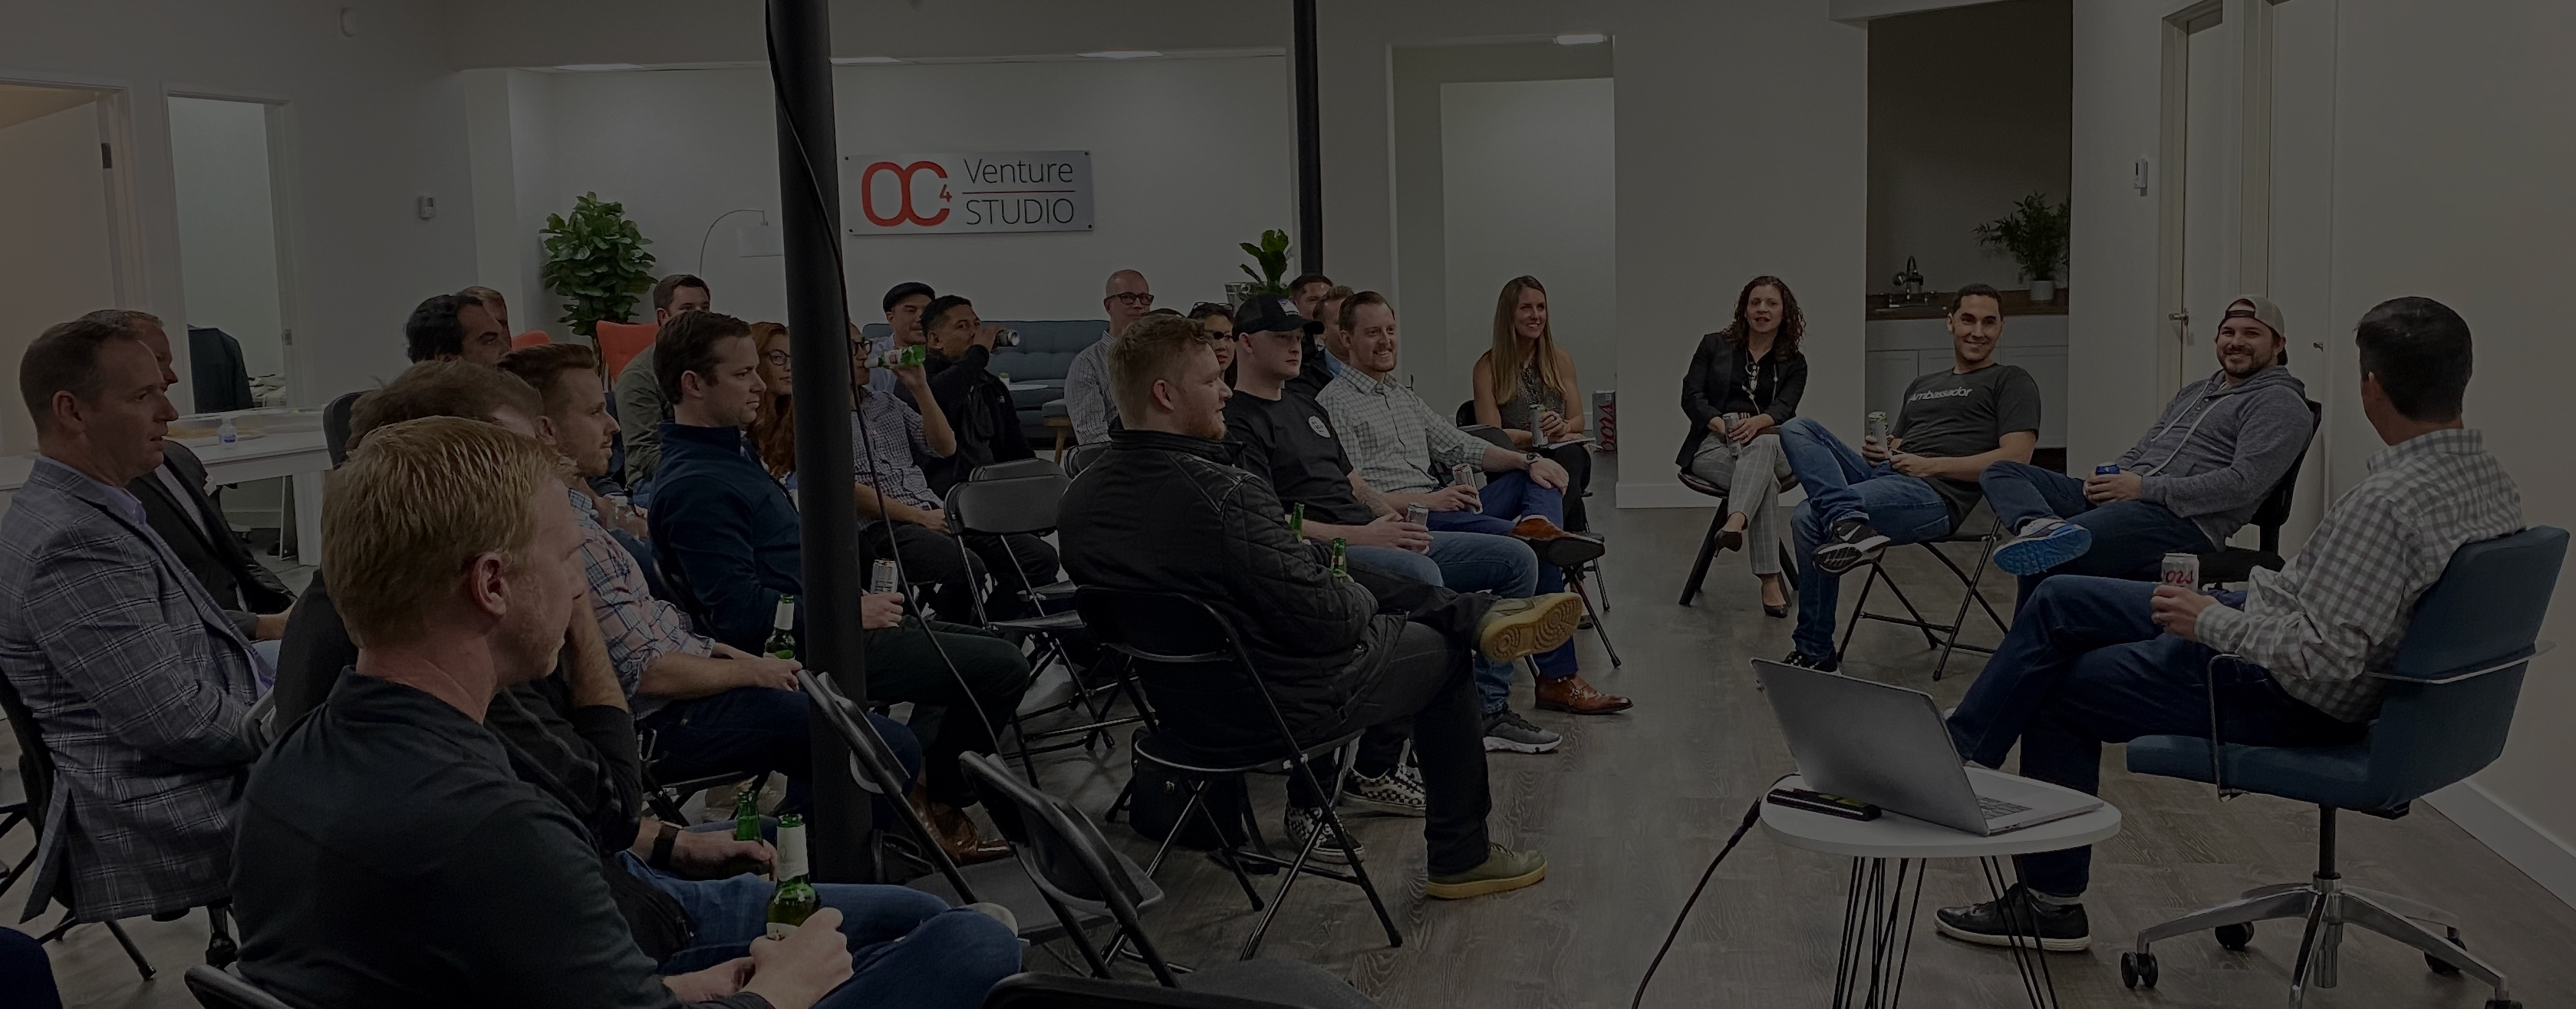 Press Release: OC4 Announces Launch and Investments